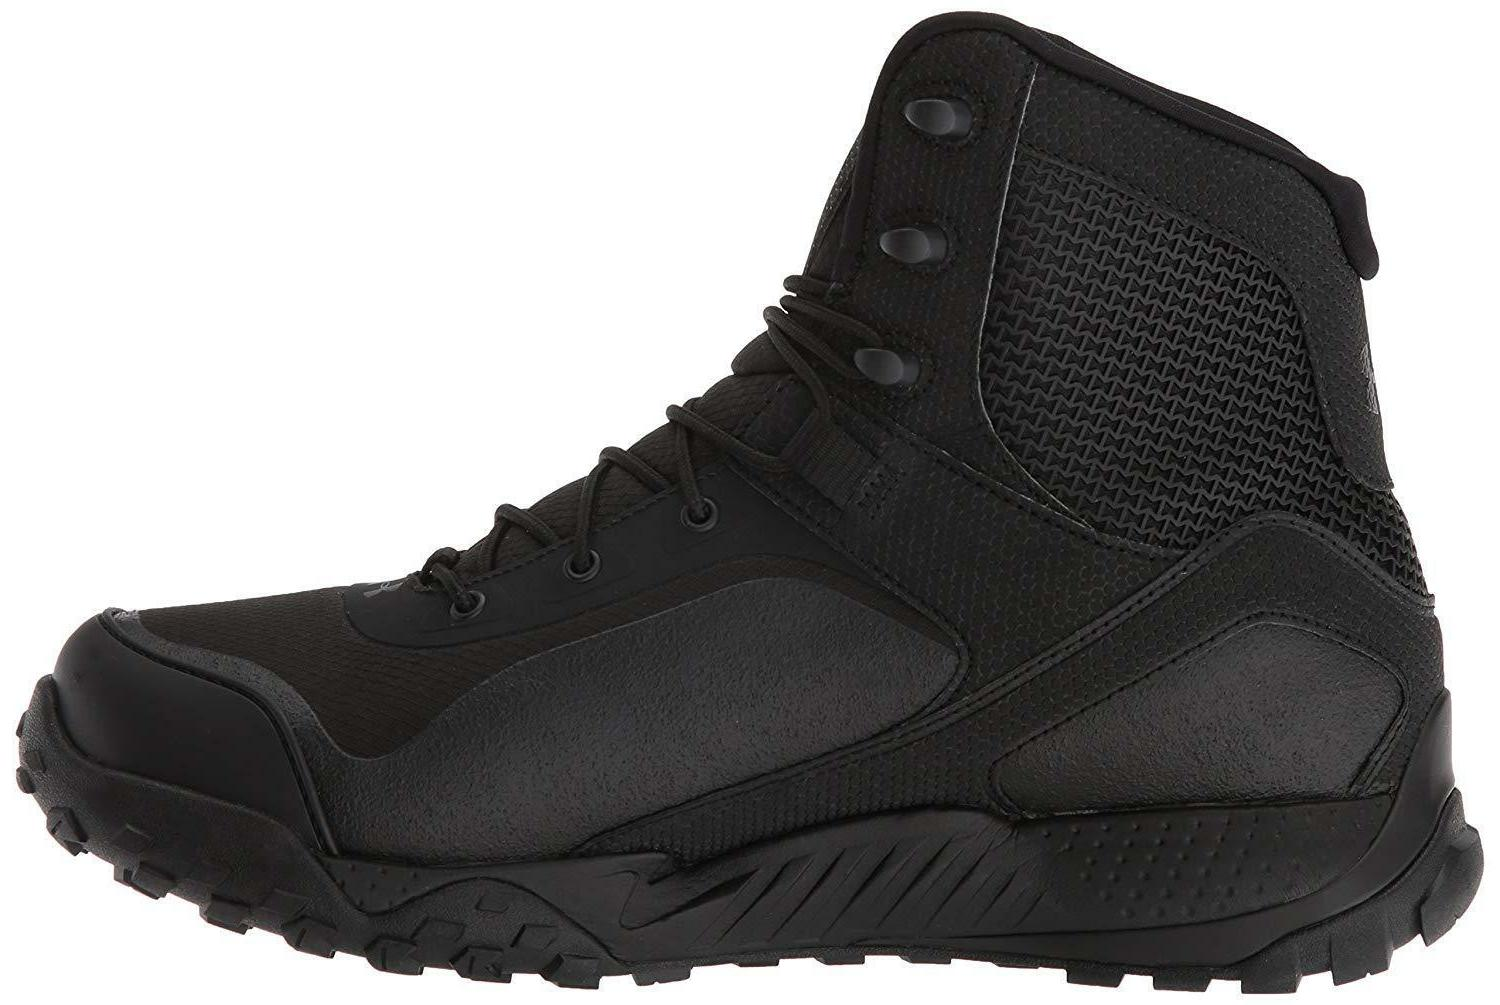 Under Valsetz RTS 1.5 Tactical Boot 3021035 001